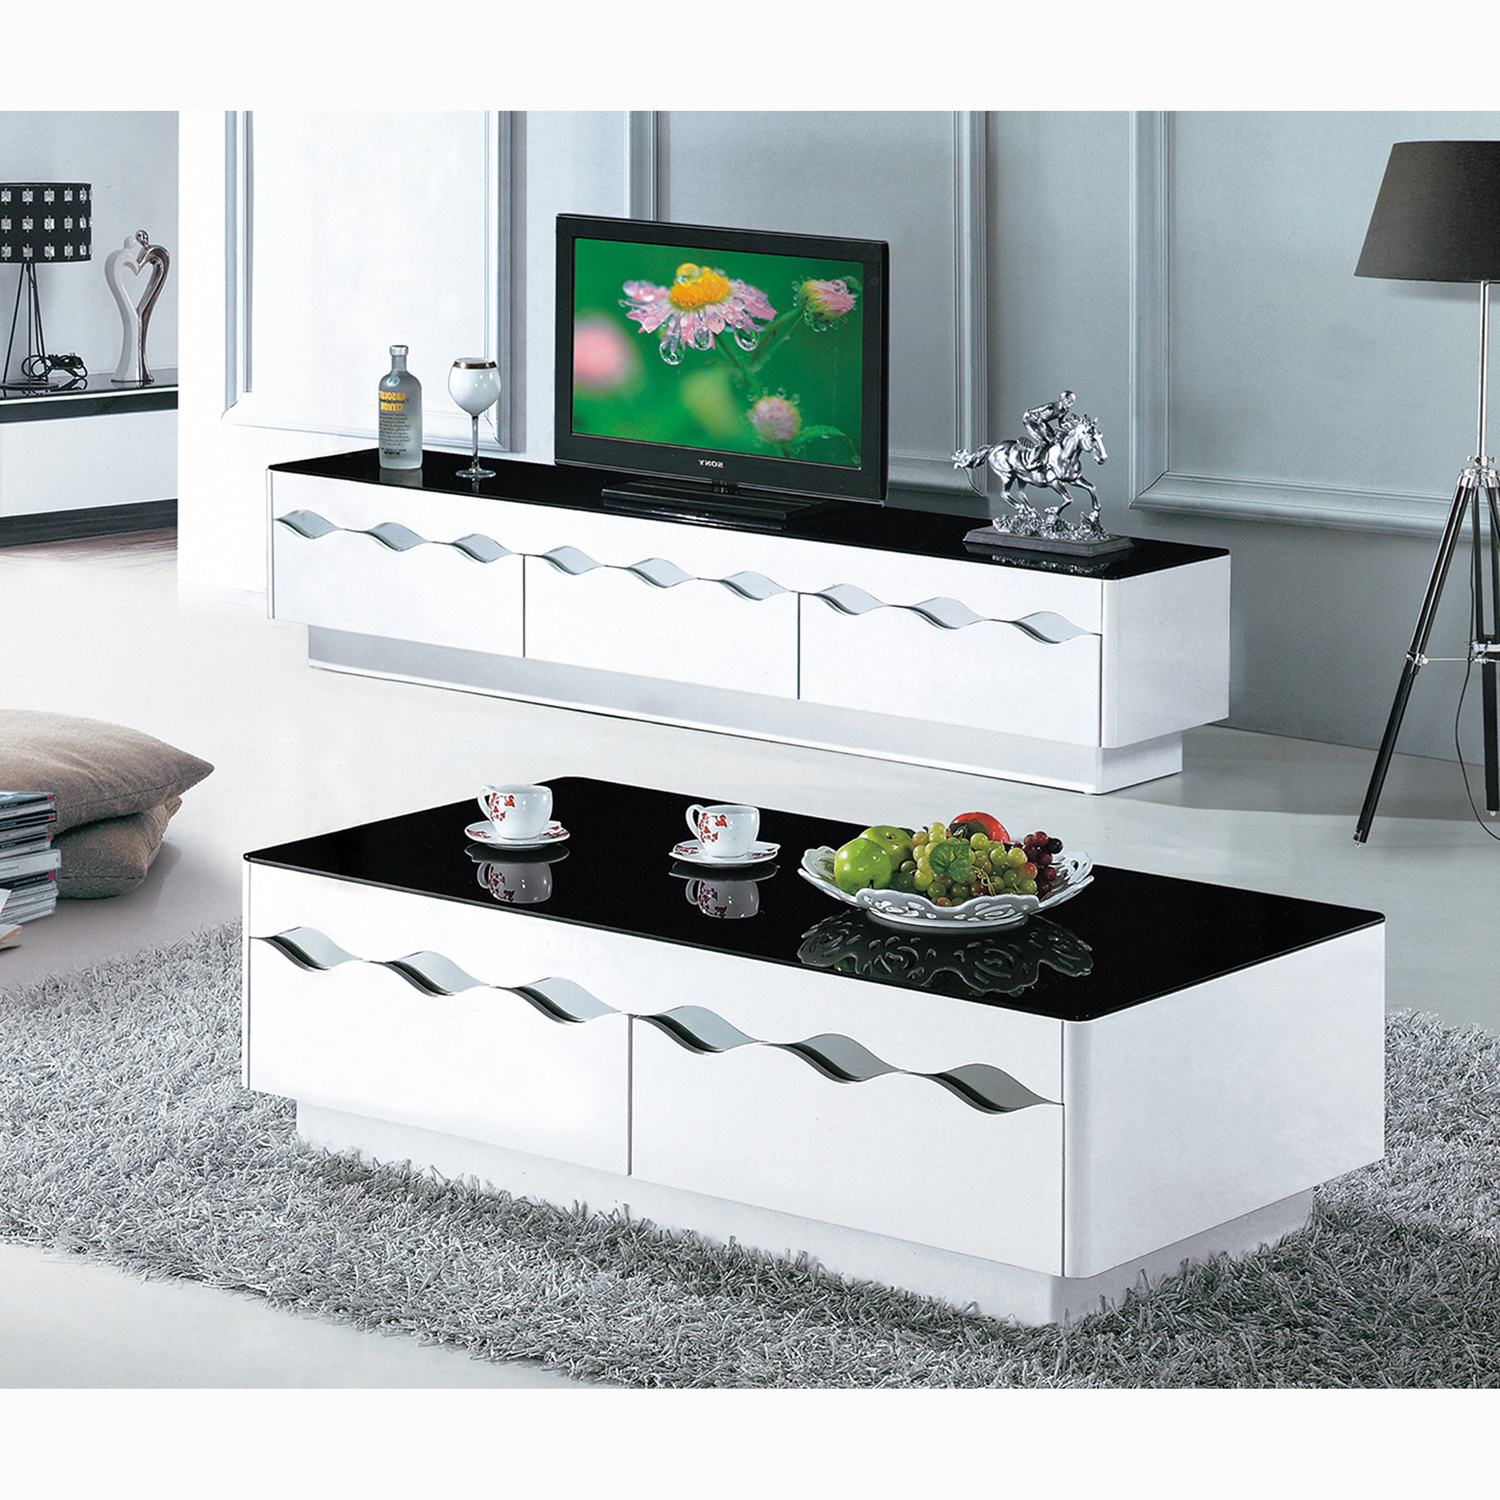 Well Known Coffee Table And Tv Console Cabinet With Doors Trays Walmart Within Tv Cabinets And Coffee Table Sets (View 2 of 20)